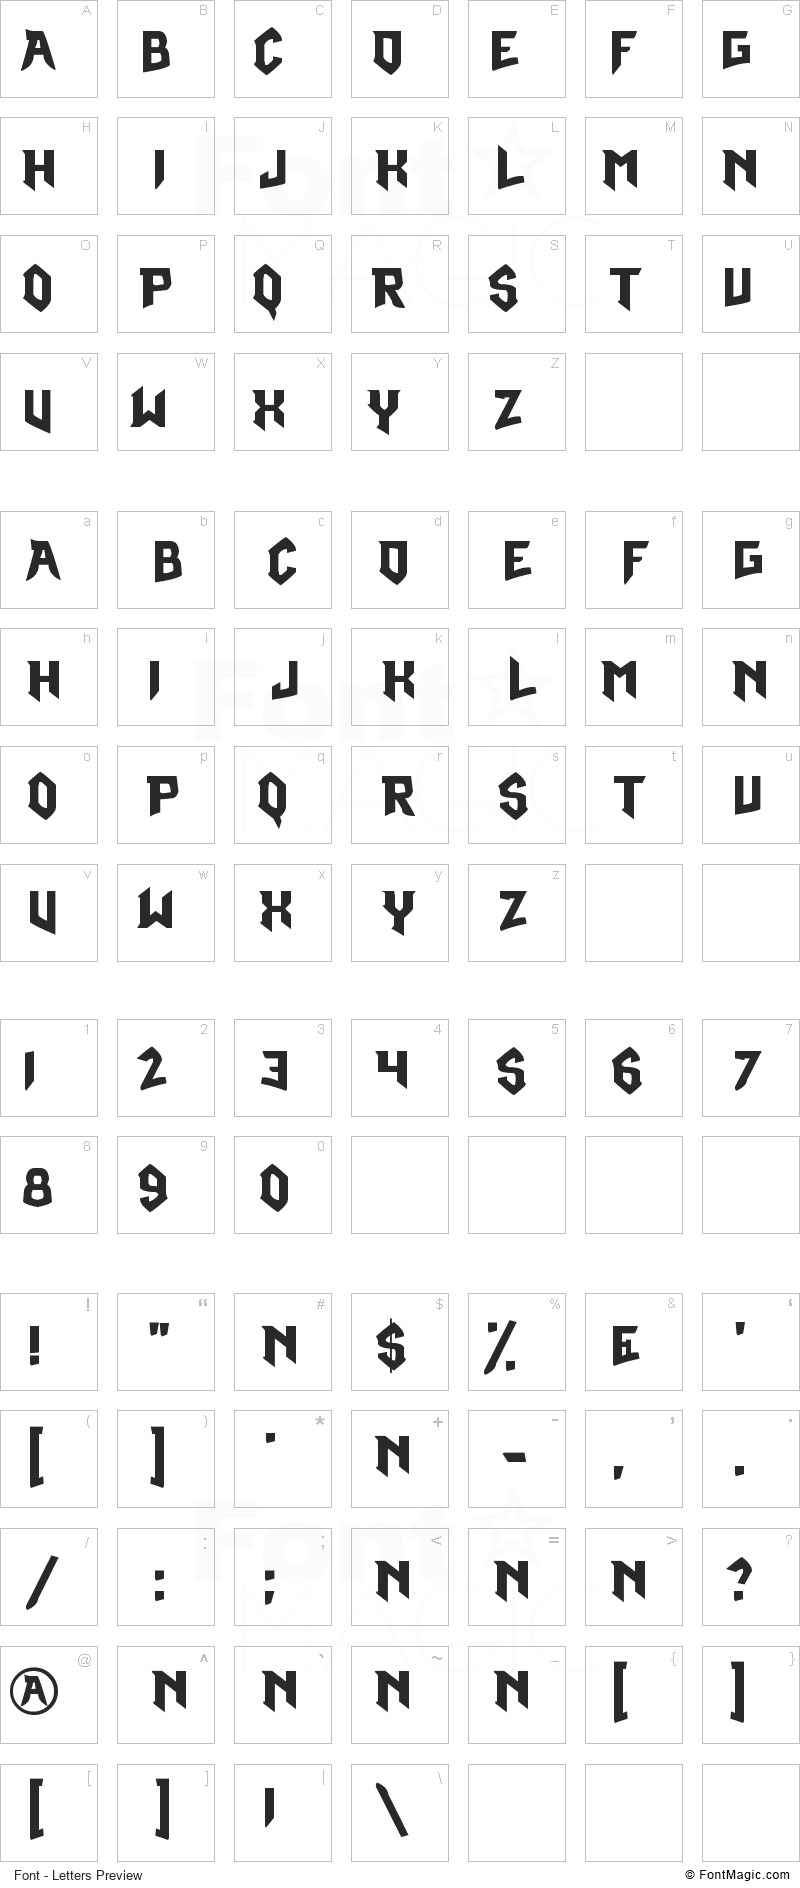 Omega Ruby Font - All Latters Preview Chart